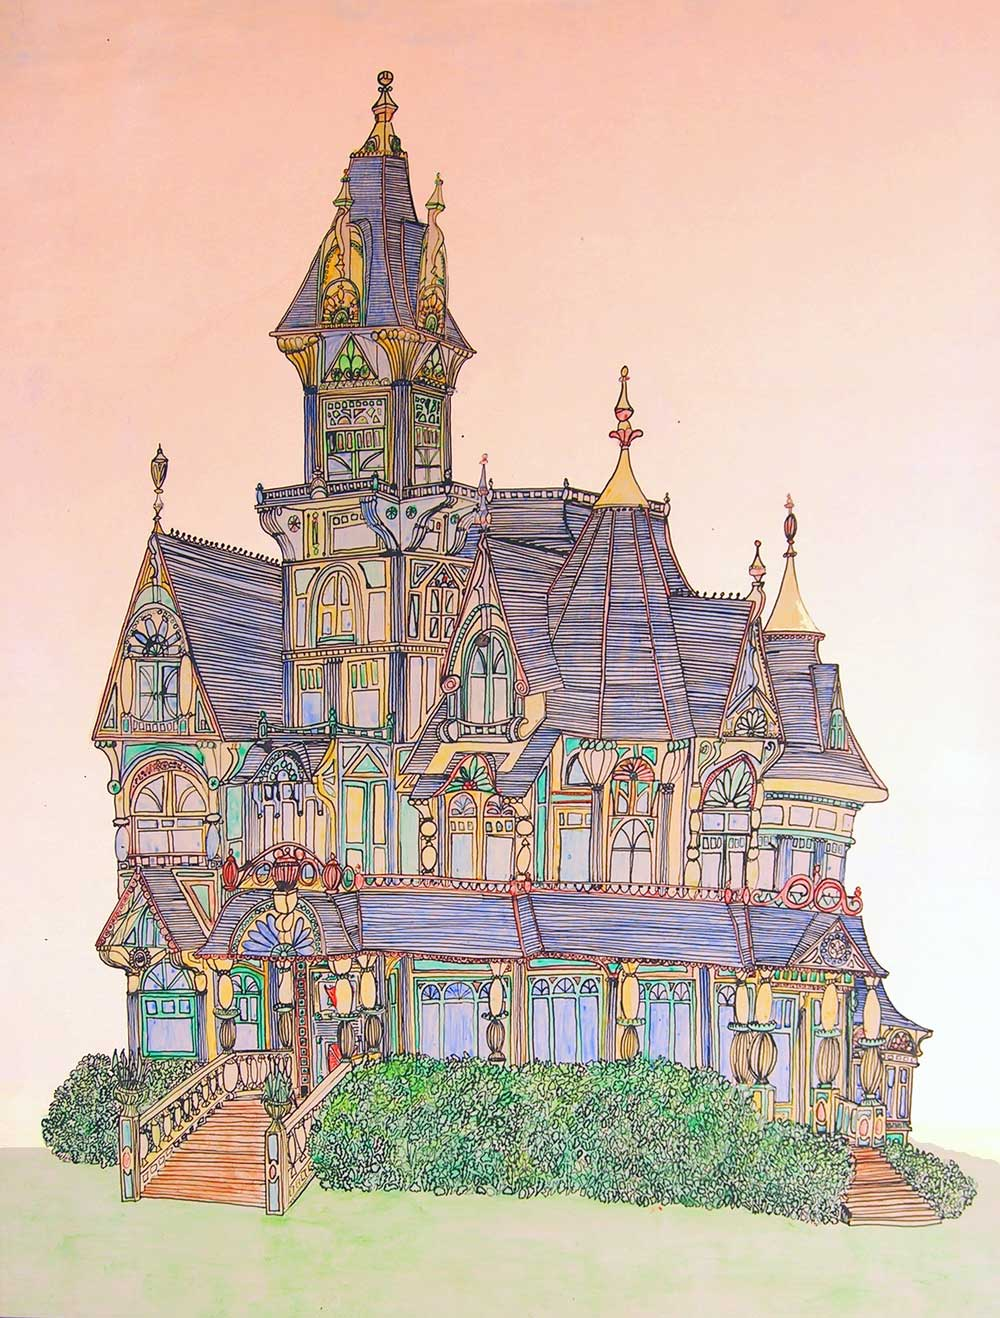 Paul's-Mansion-Illustration.jpg